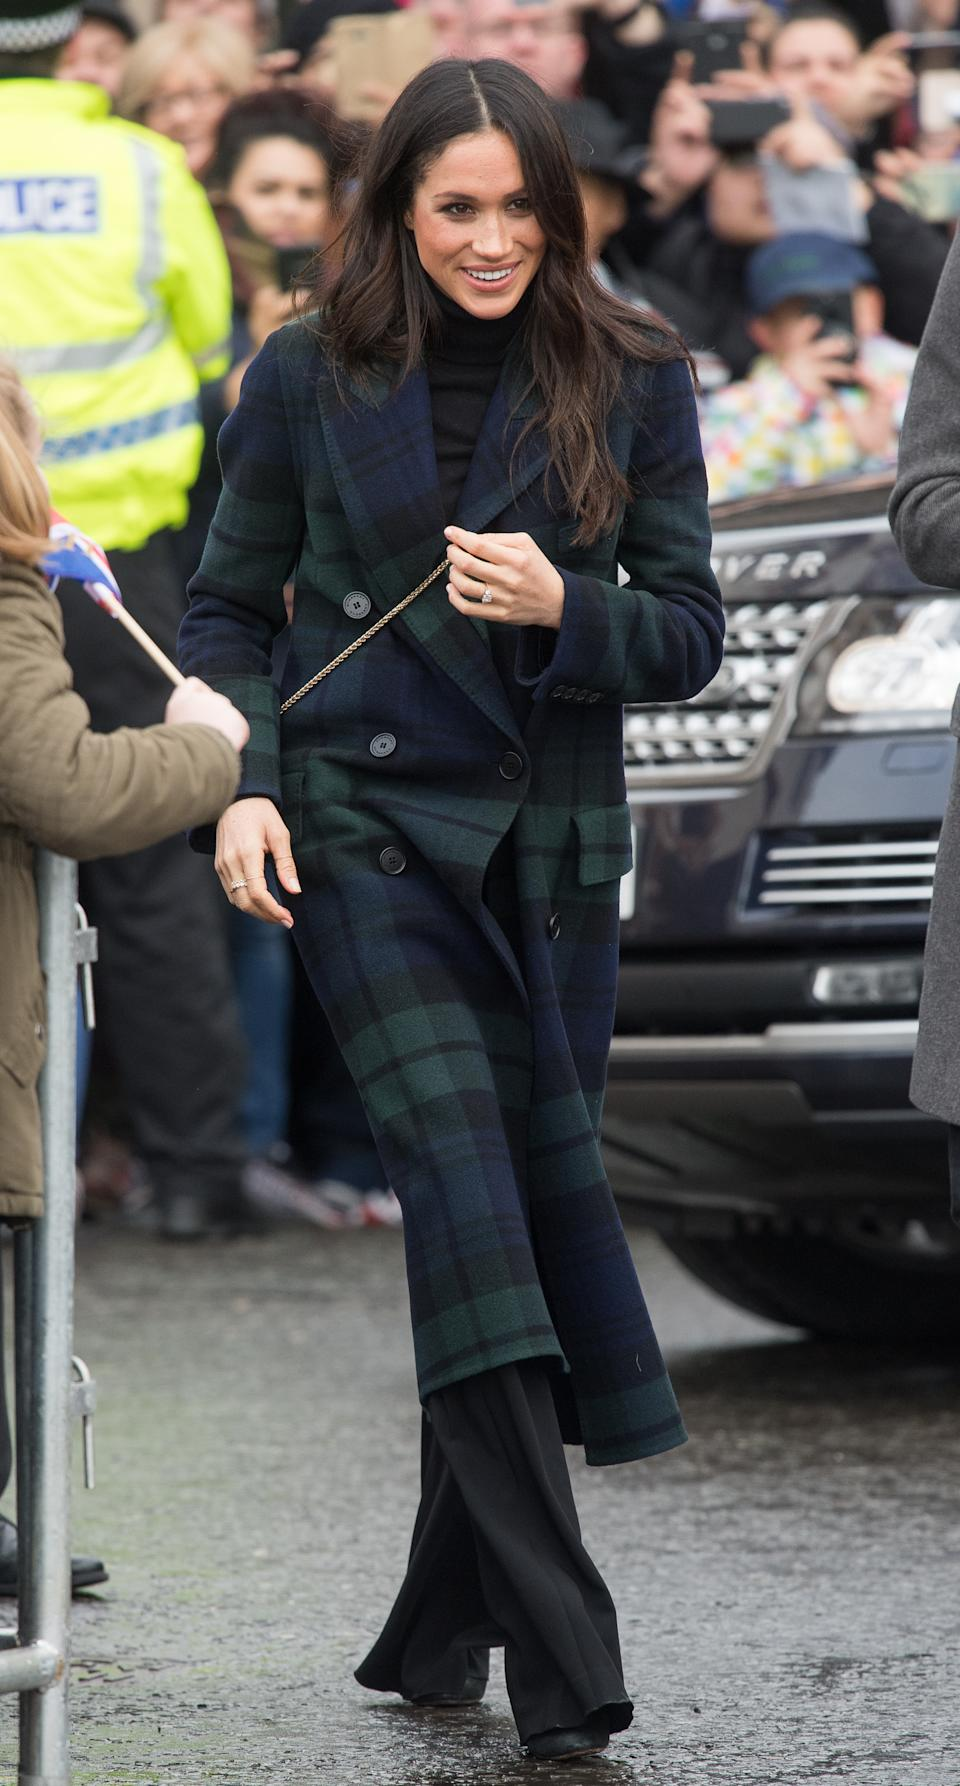 <p>Markle's tartan Burberry jacket marked the birth of a style star during a trip to Edinburgh, Scotland in February 2018 with then fiancé, Prince Harry. <em>(Image via Getty Images)</em></p>